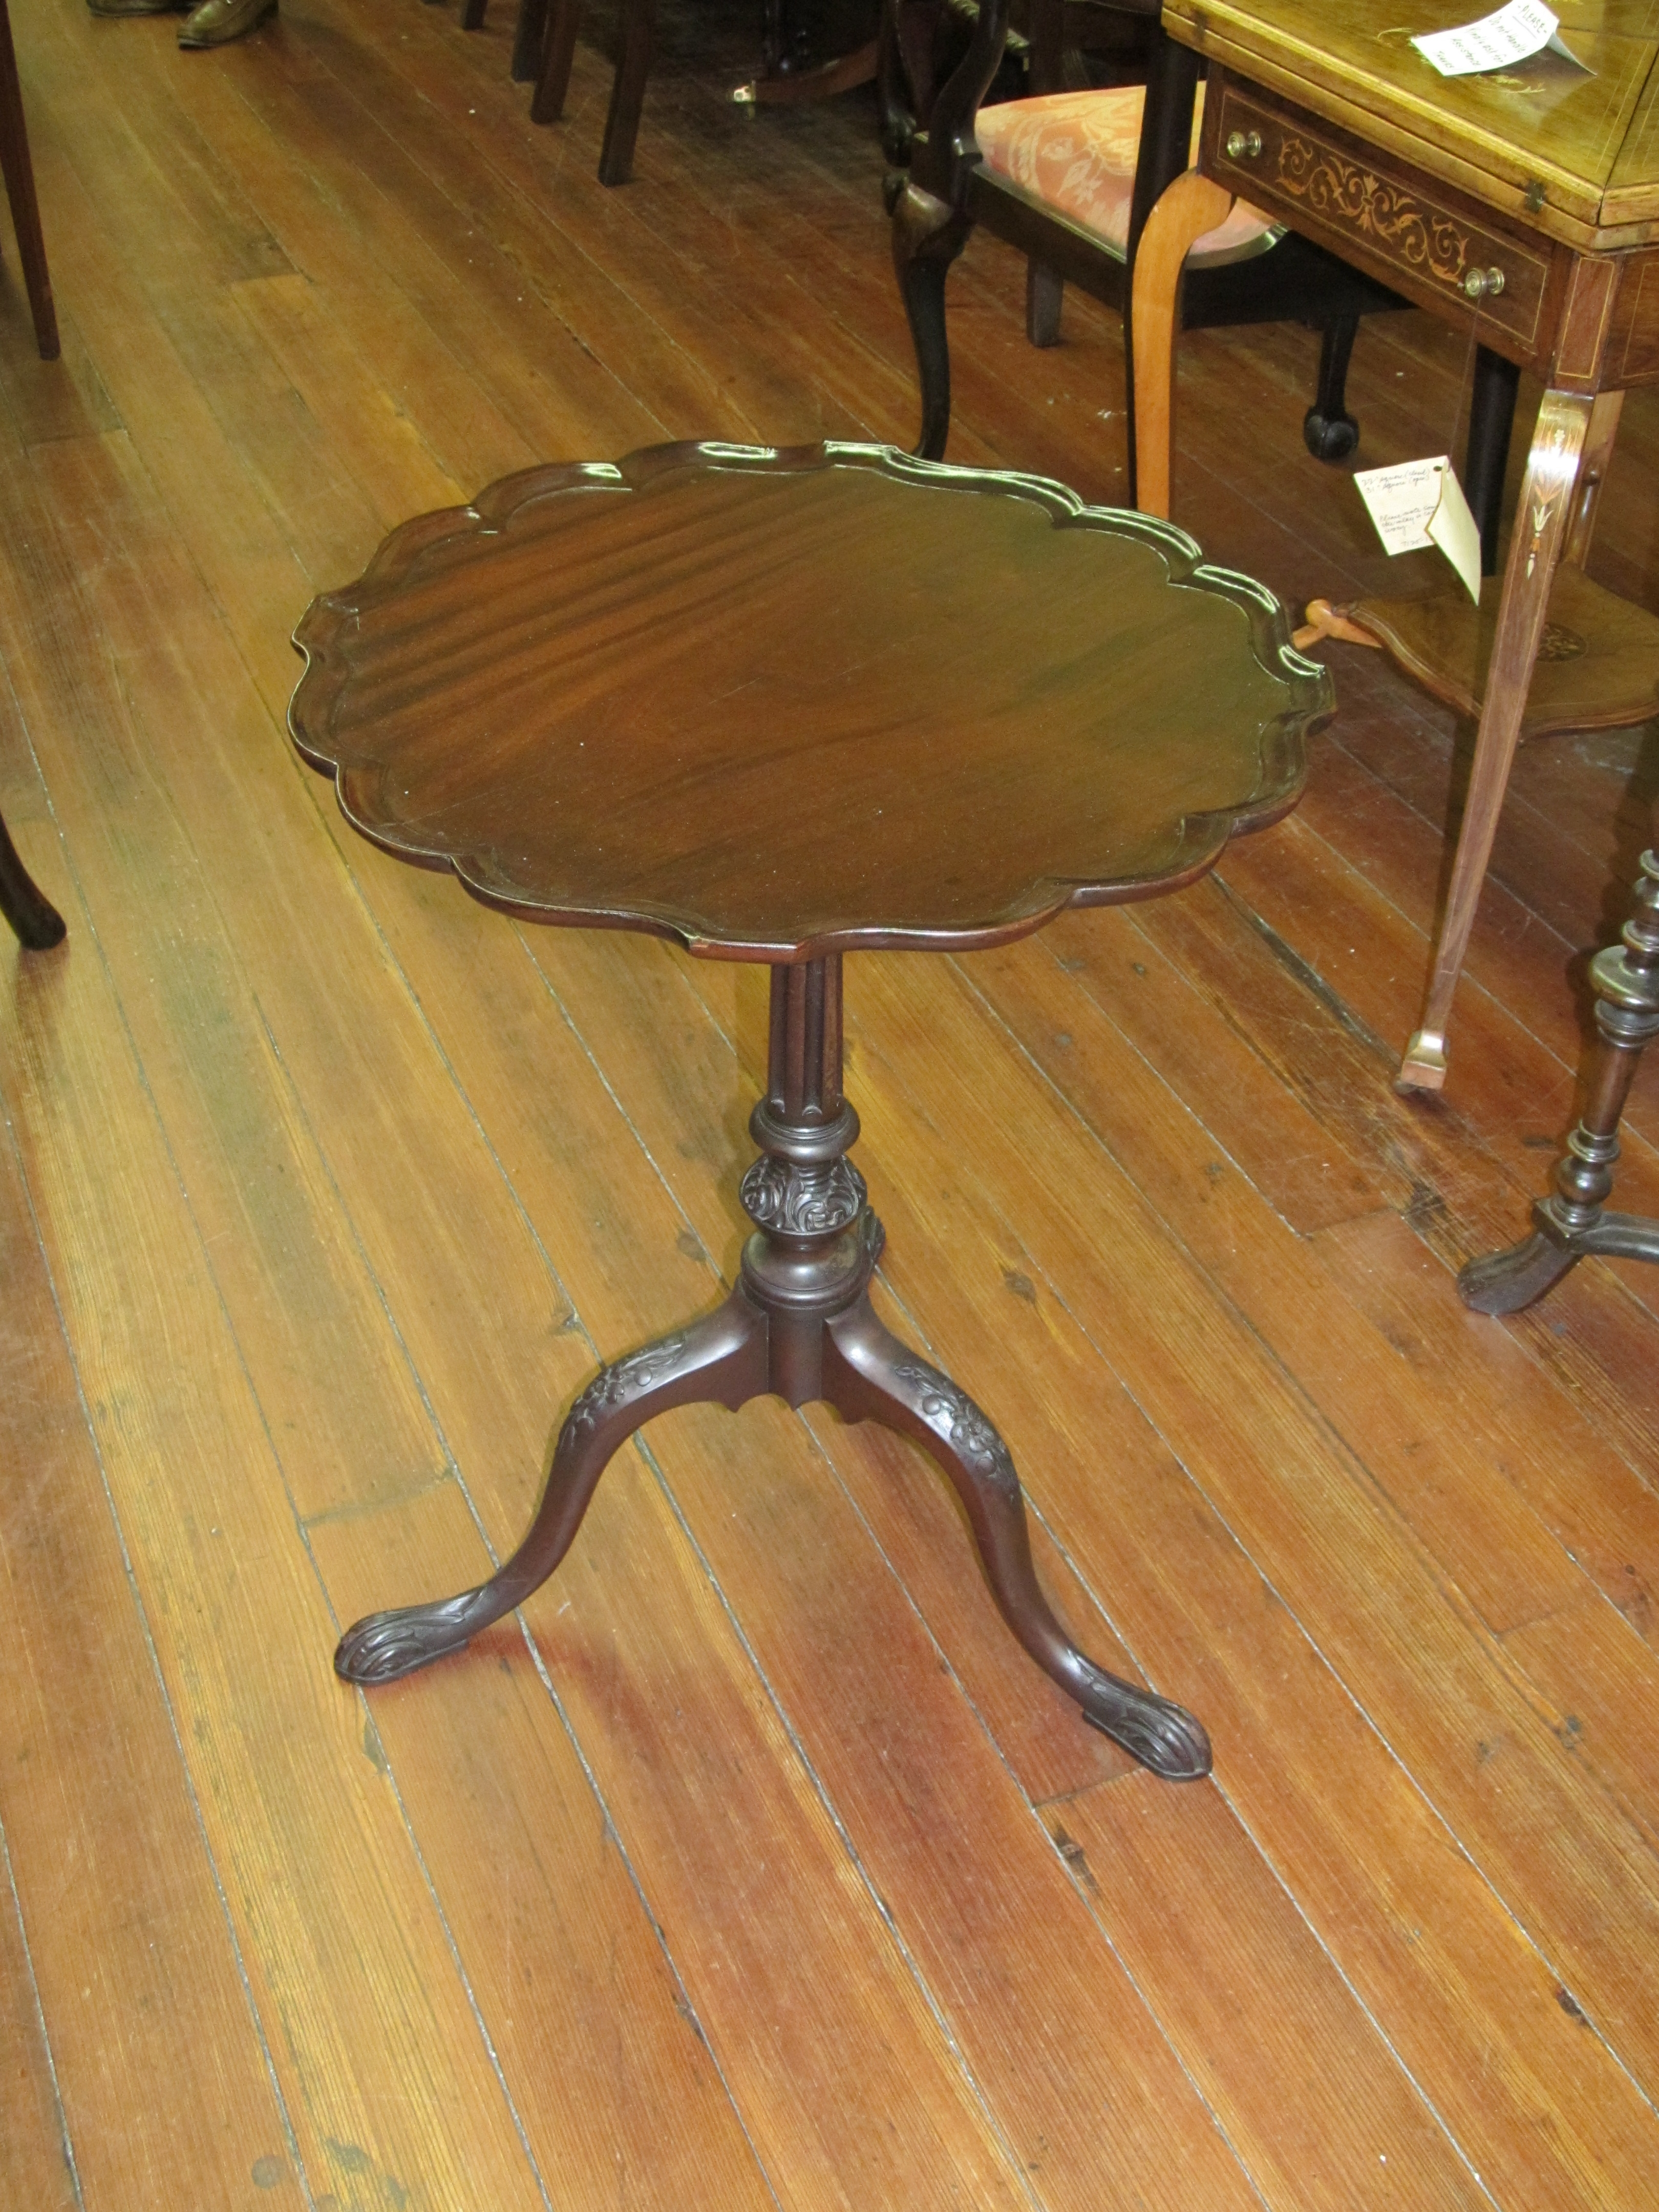 karl gustavian table end c in antique tables side round swedish johan tripod century birch center centre ashley pedestal bonnin circa